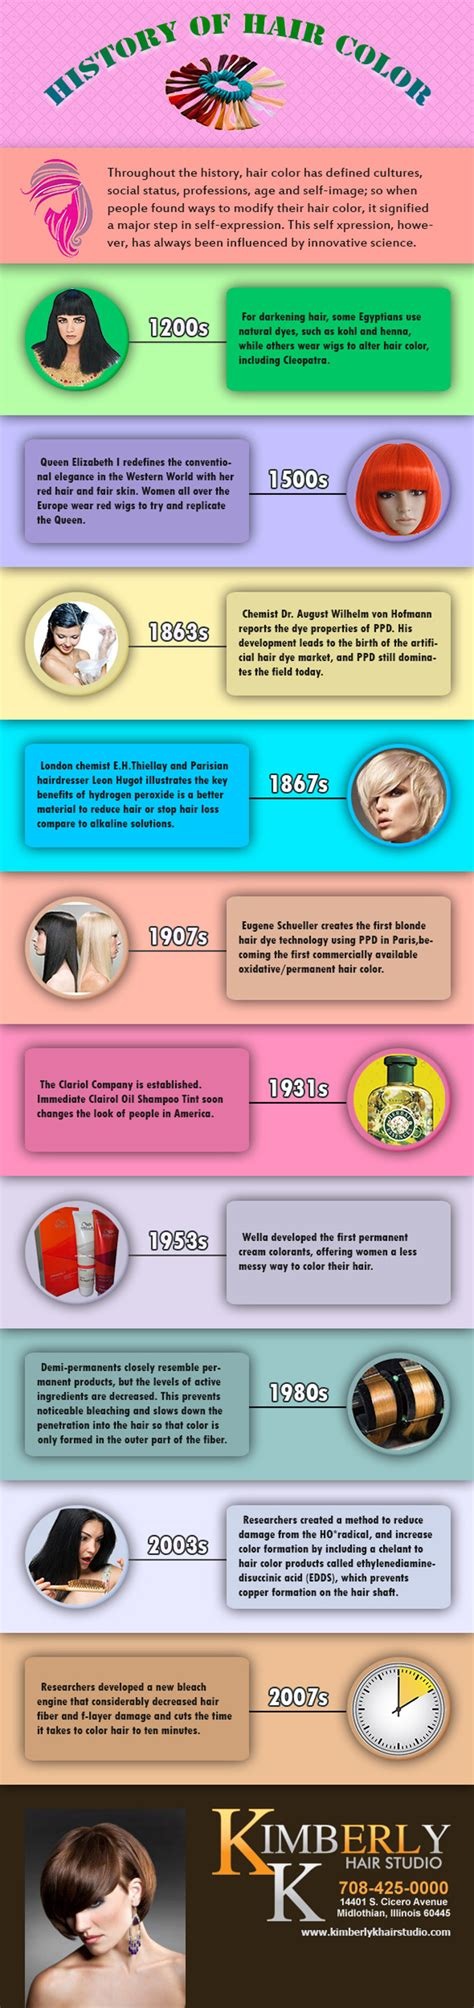 history of hair color fields of color can you lighten your hair with lime juice hrfnd